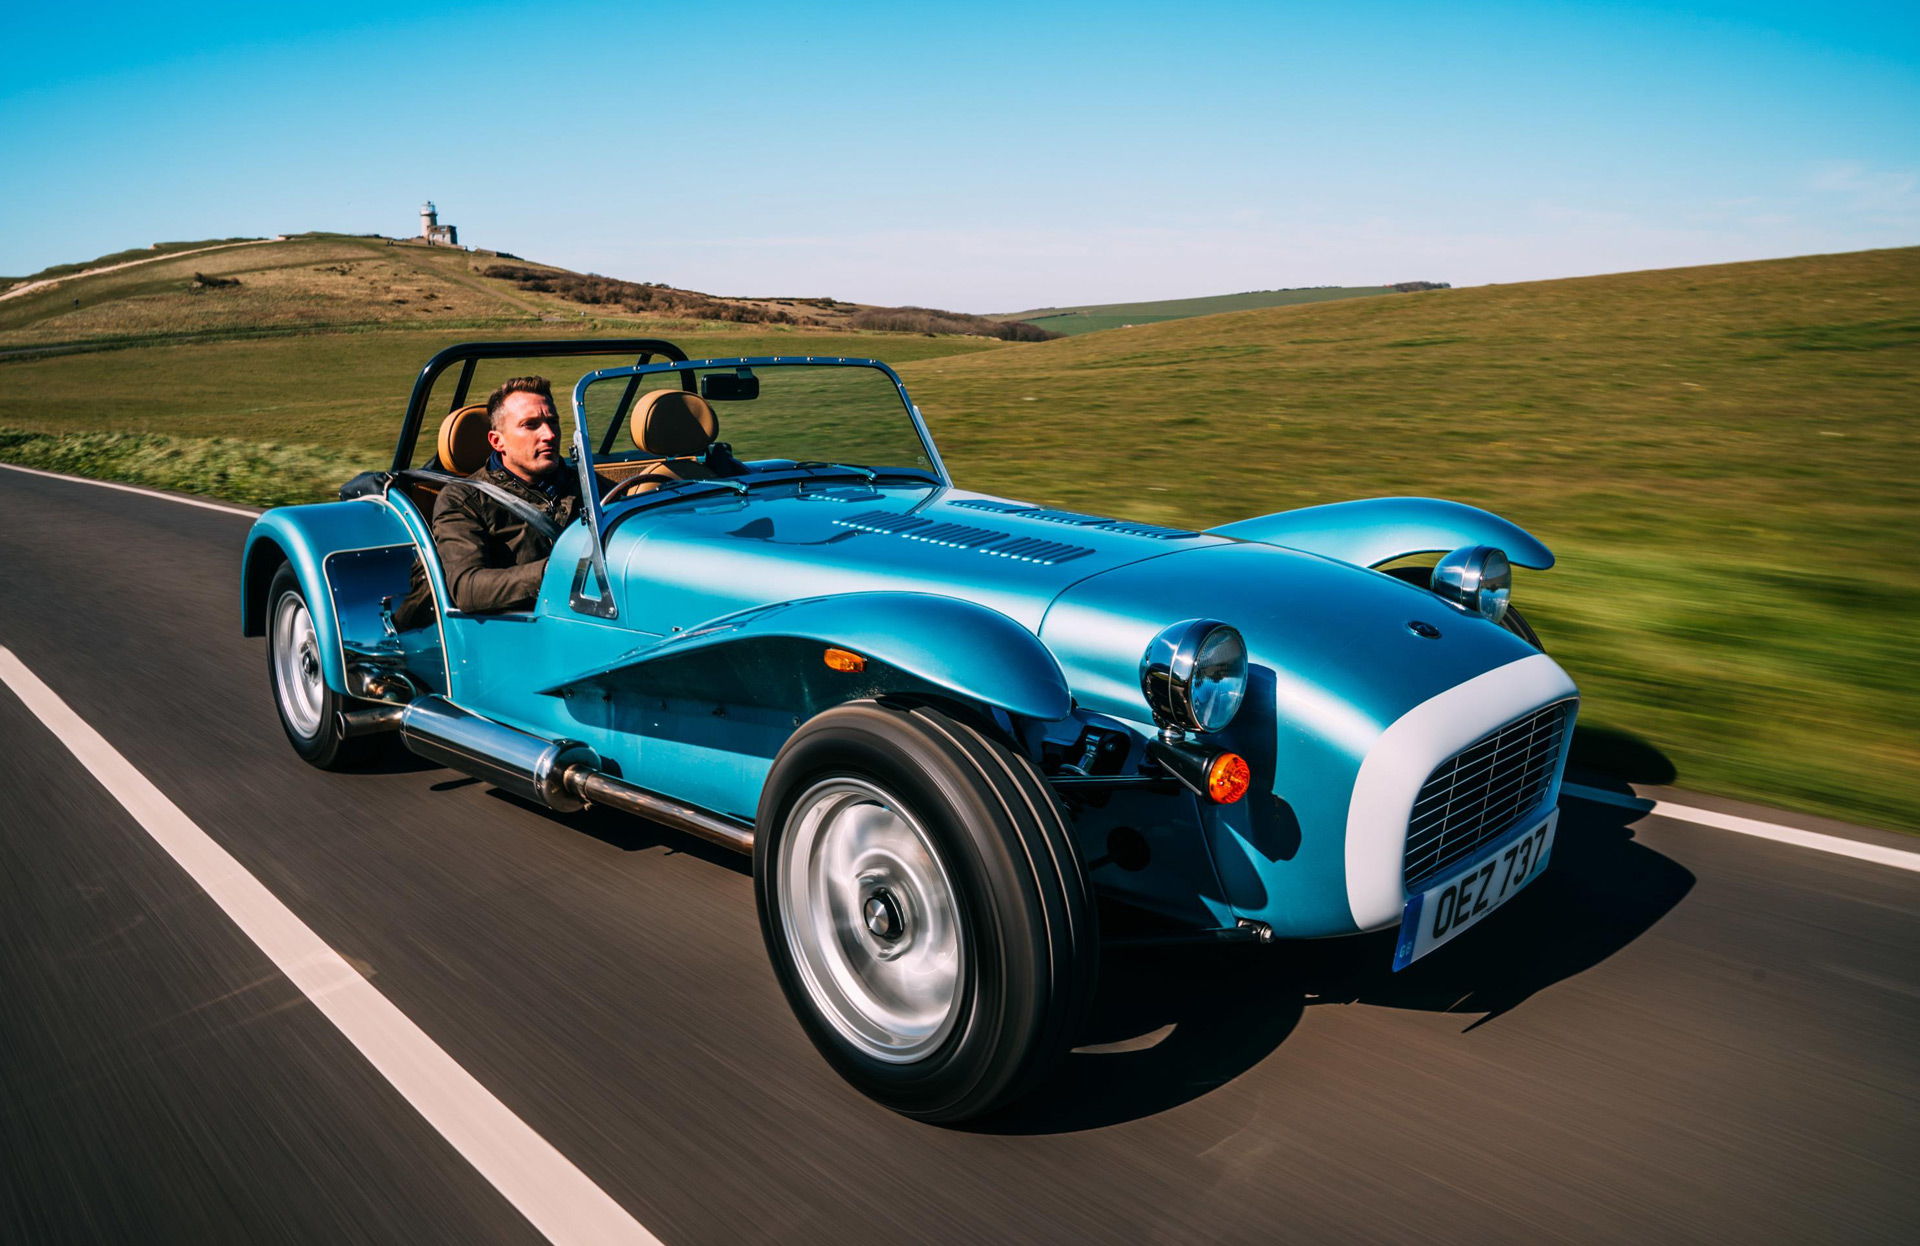 Caterham returns with 1970s-inspired Super Seven 1600 - Motor Authority